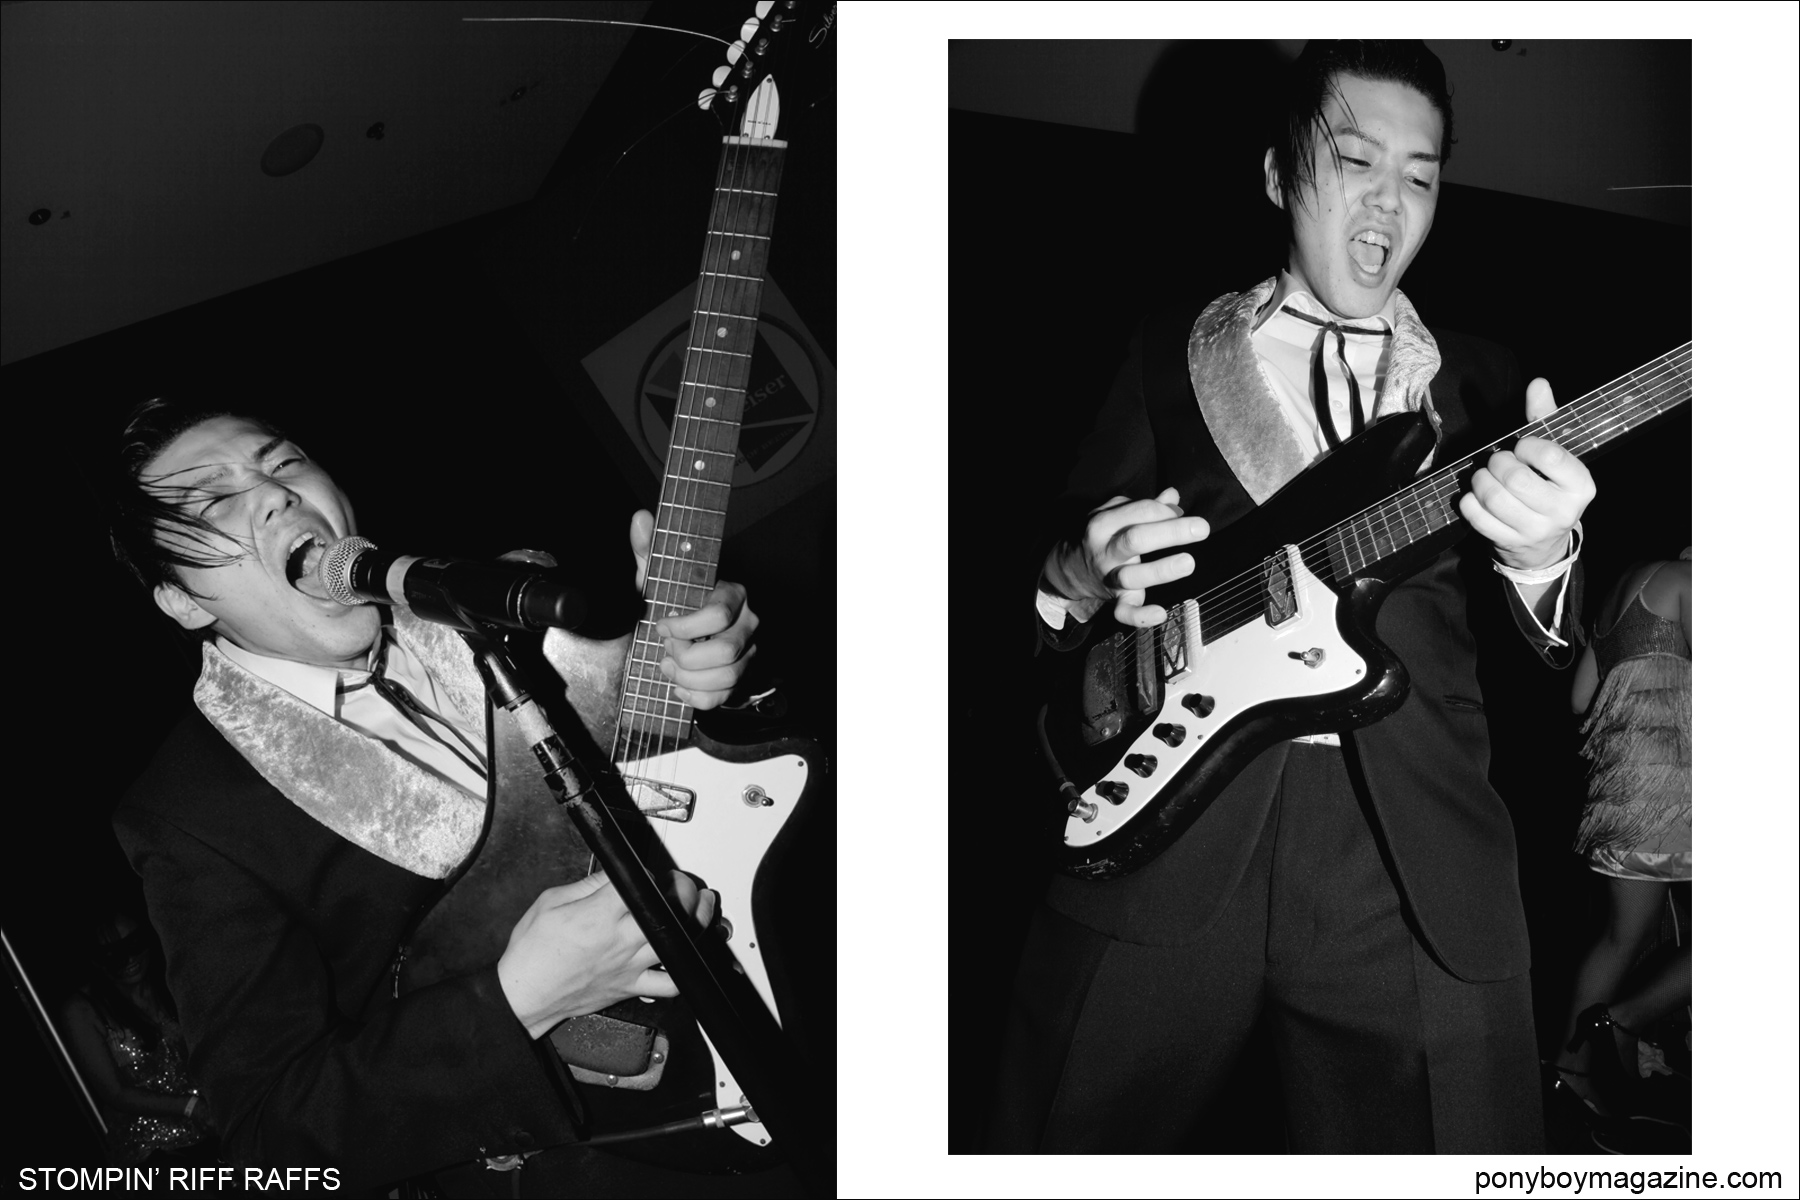 Japanese export Stompin' Riff Raffs, photographed at Tom Ingram's annual rockabilly weekender Viva Las Vegas. Photographs by Alexander Thompson for Ponyboy Magazine.